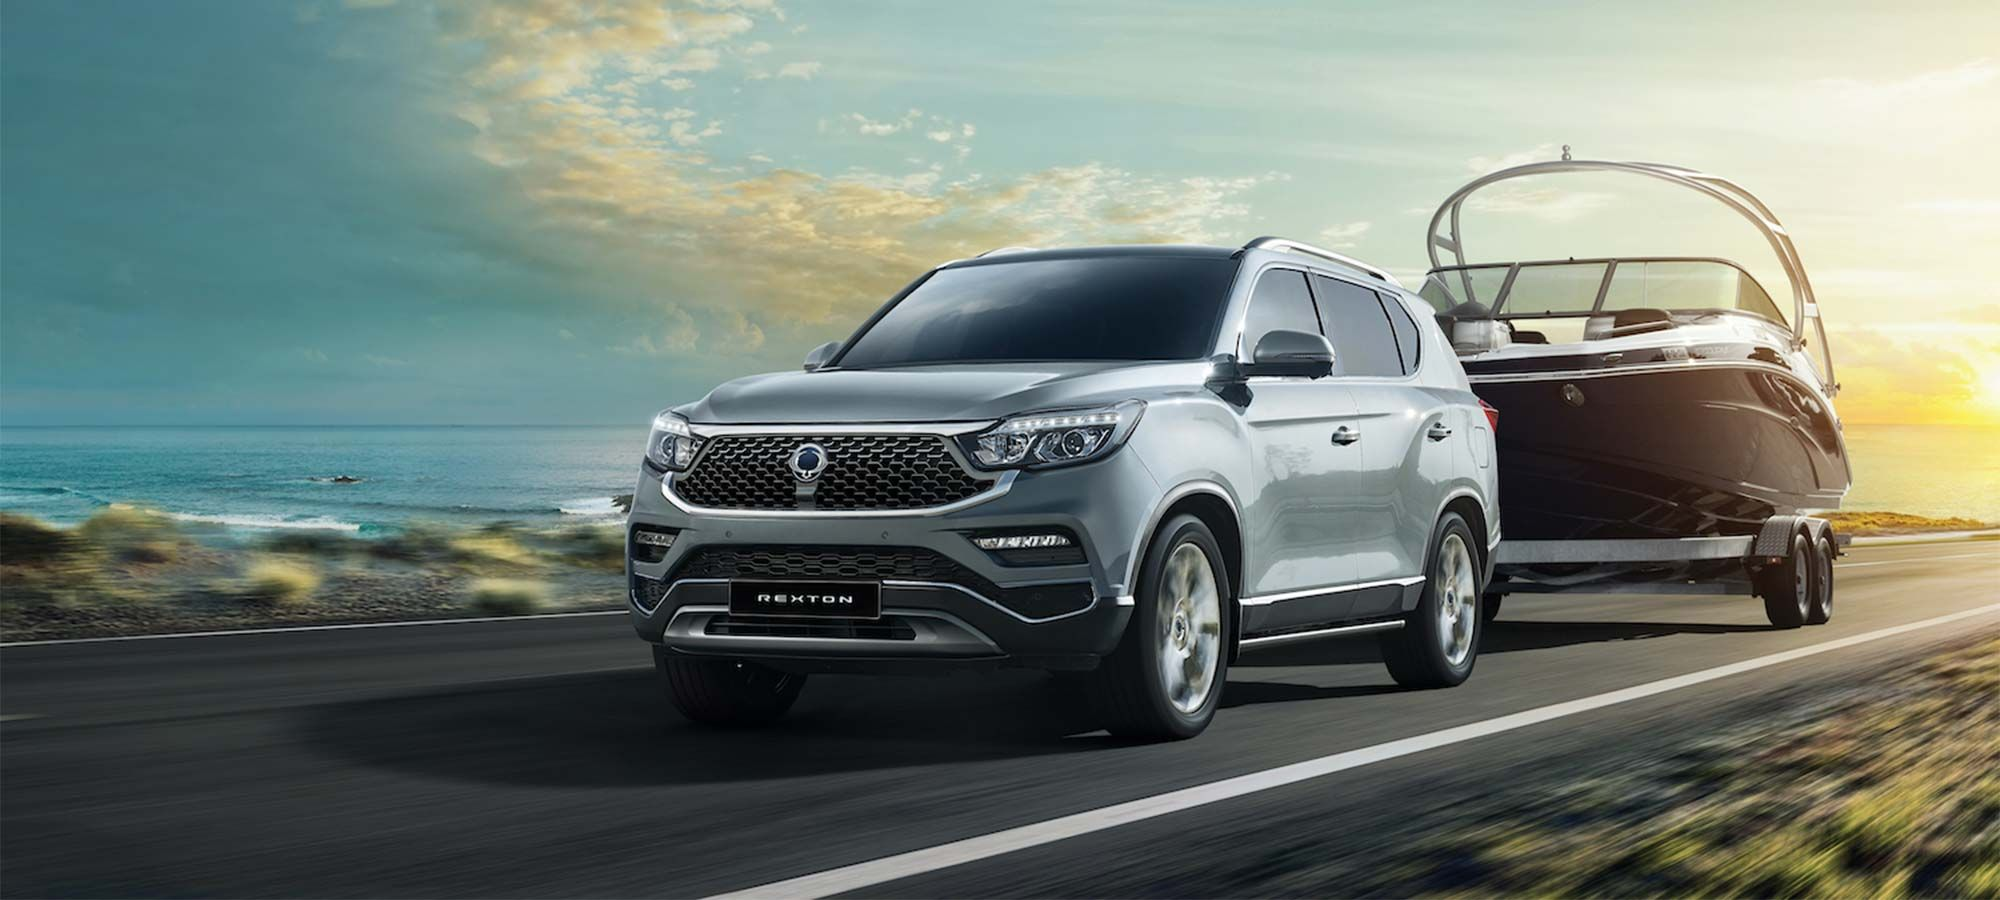 ssangyong-rexton-7-seat-suv